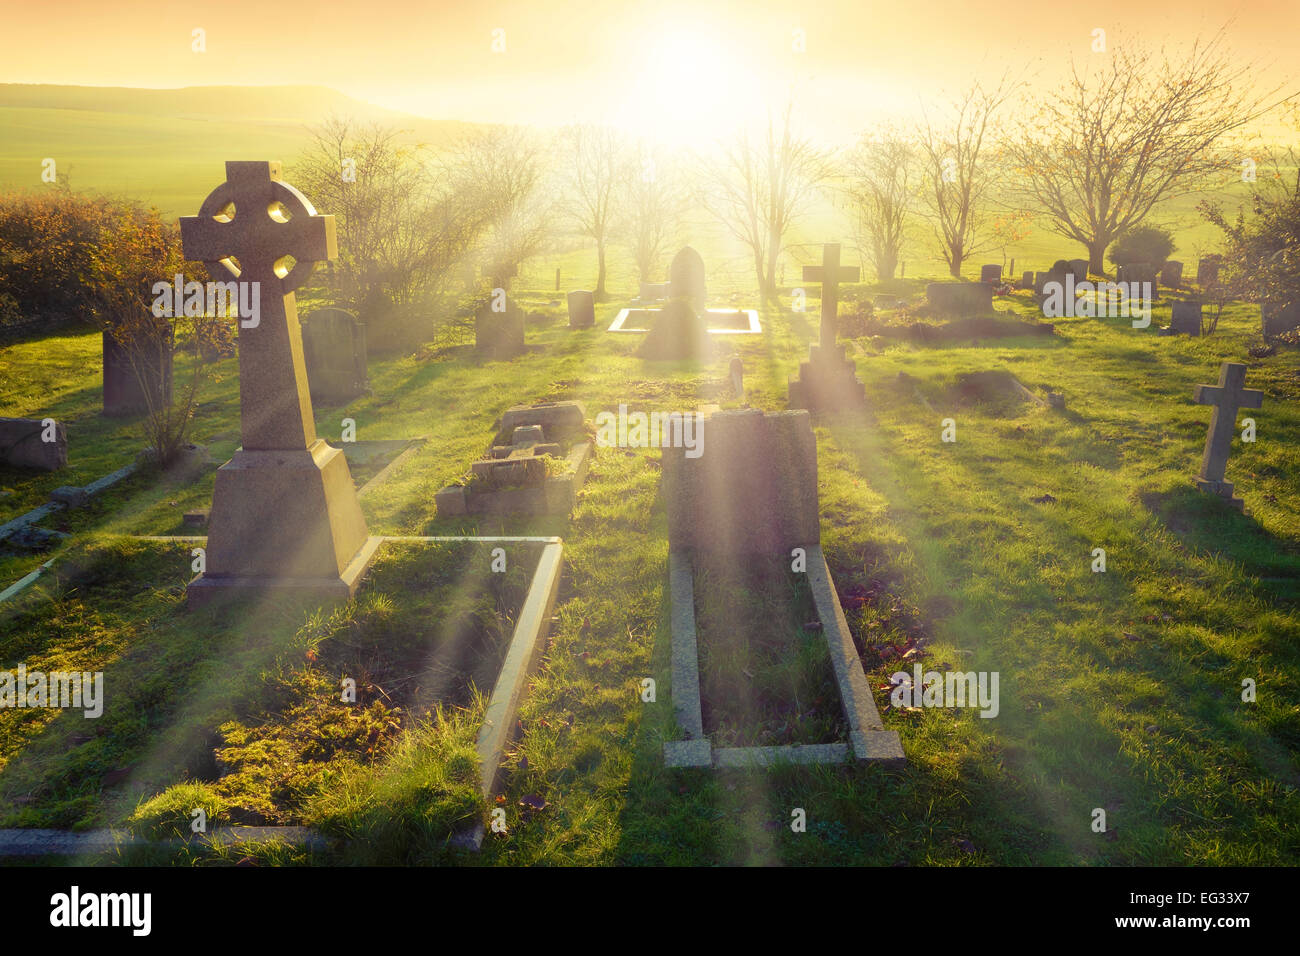 Heavenly light shining upon a old graveyard in England, United Kingdom. - Stock Image